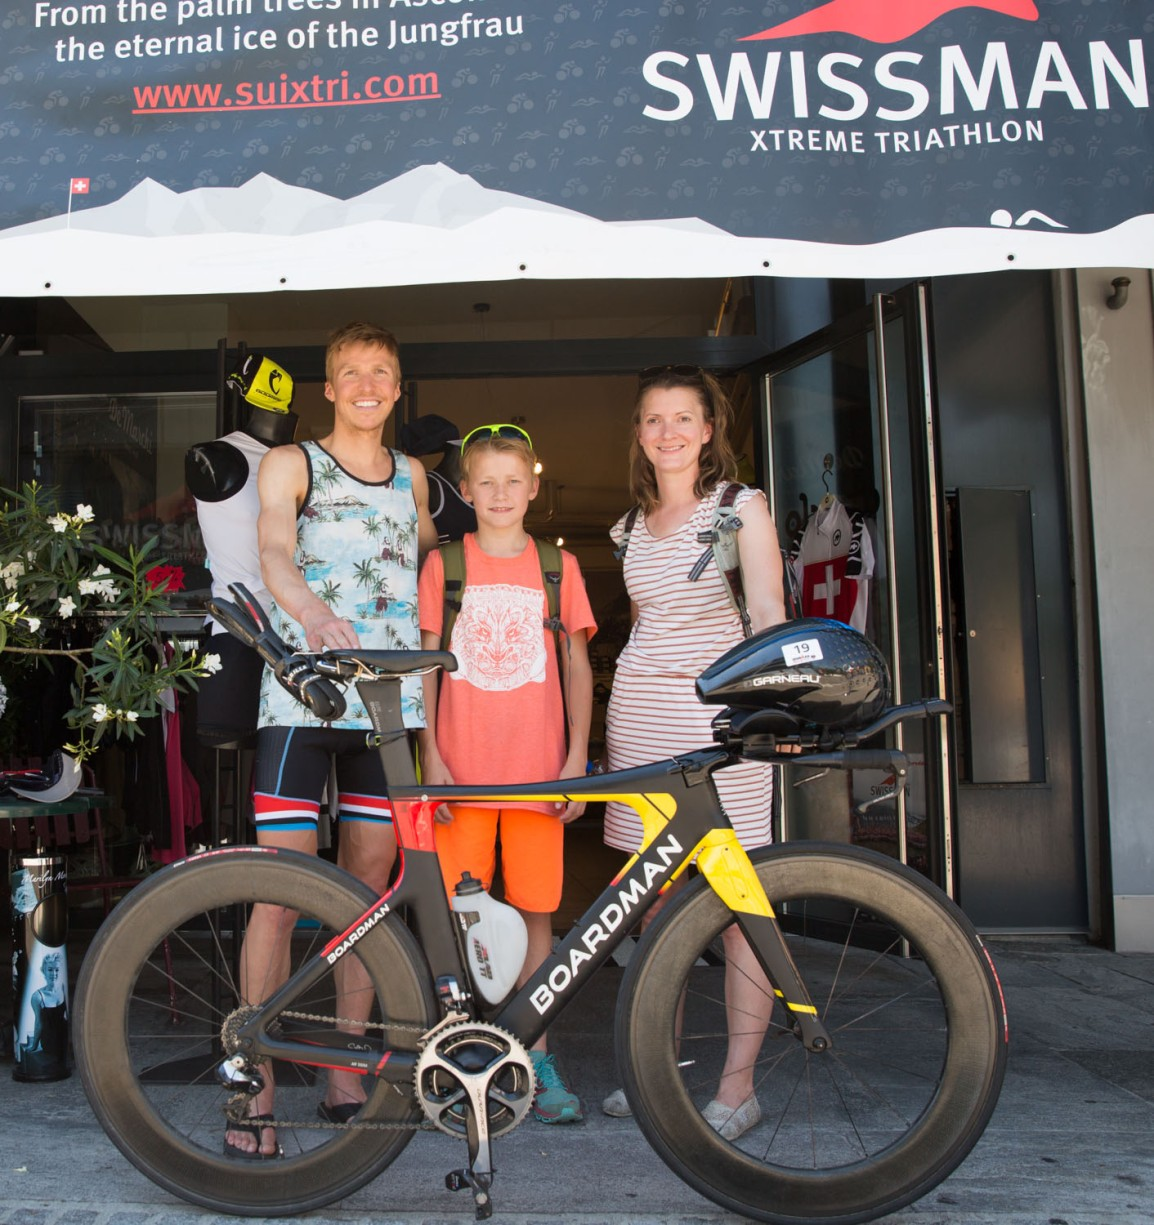 Swissman Xtreme Triathlon – I am here to win